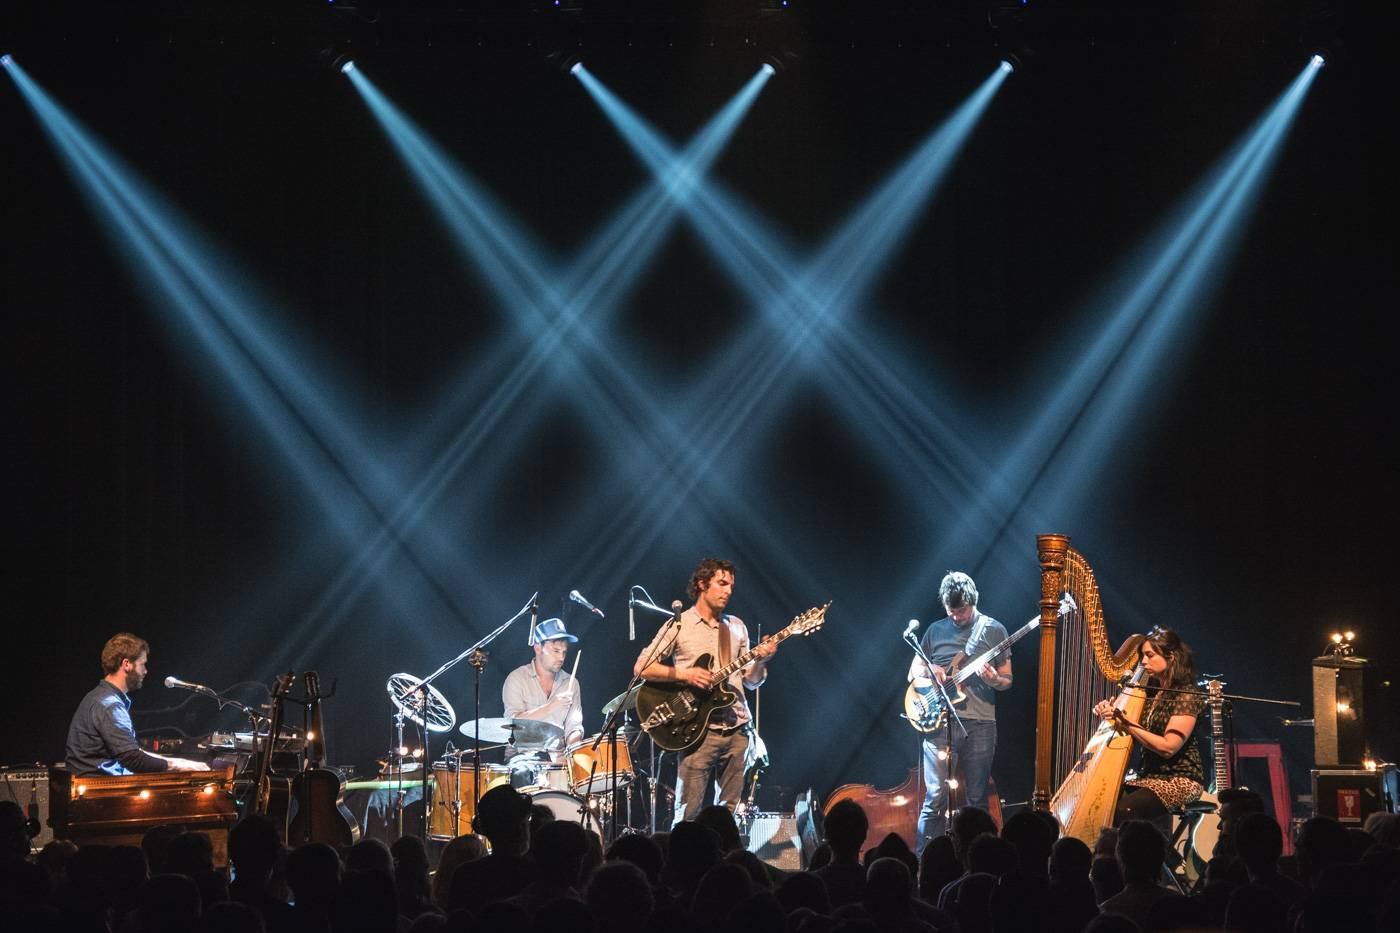 Barr Brothers at the Imperial Theatre, Vancouver, May 29 2015. Pavel Boiko photo.